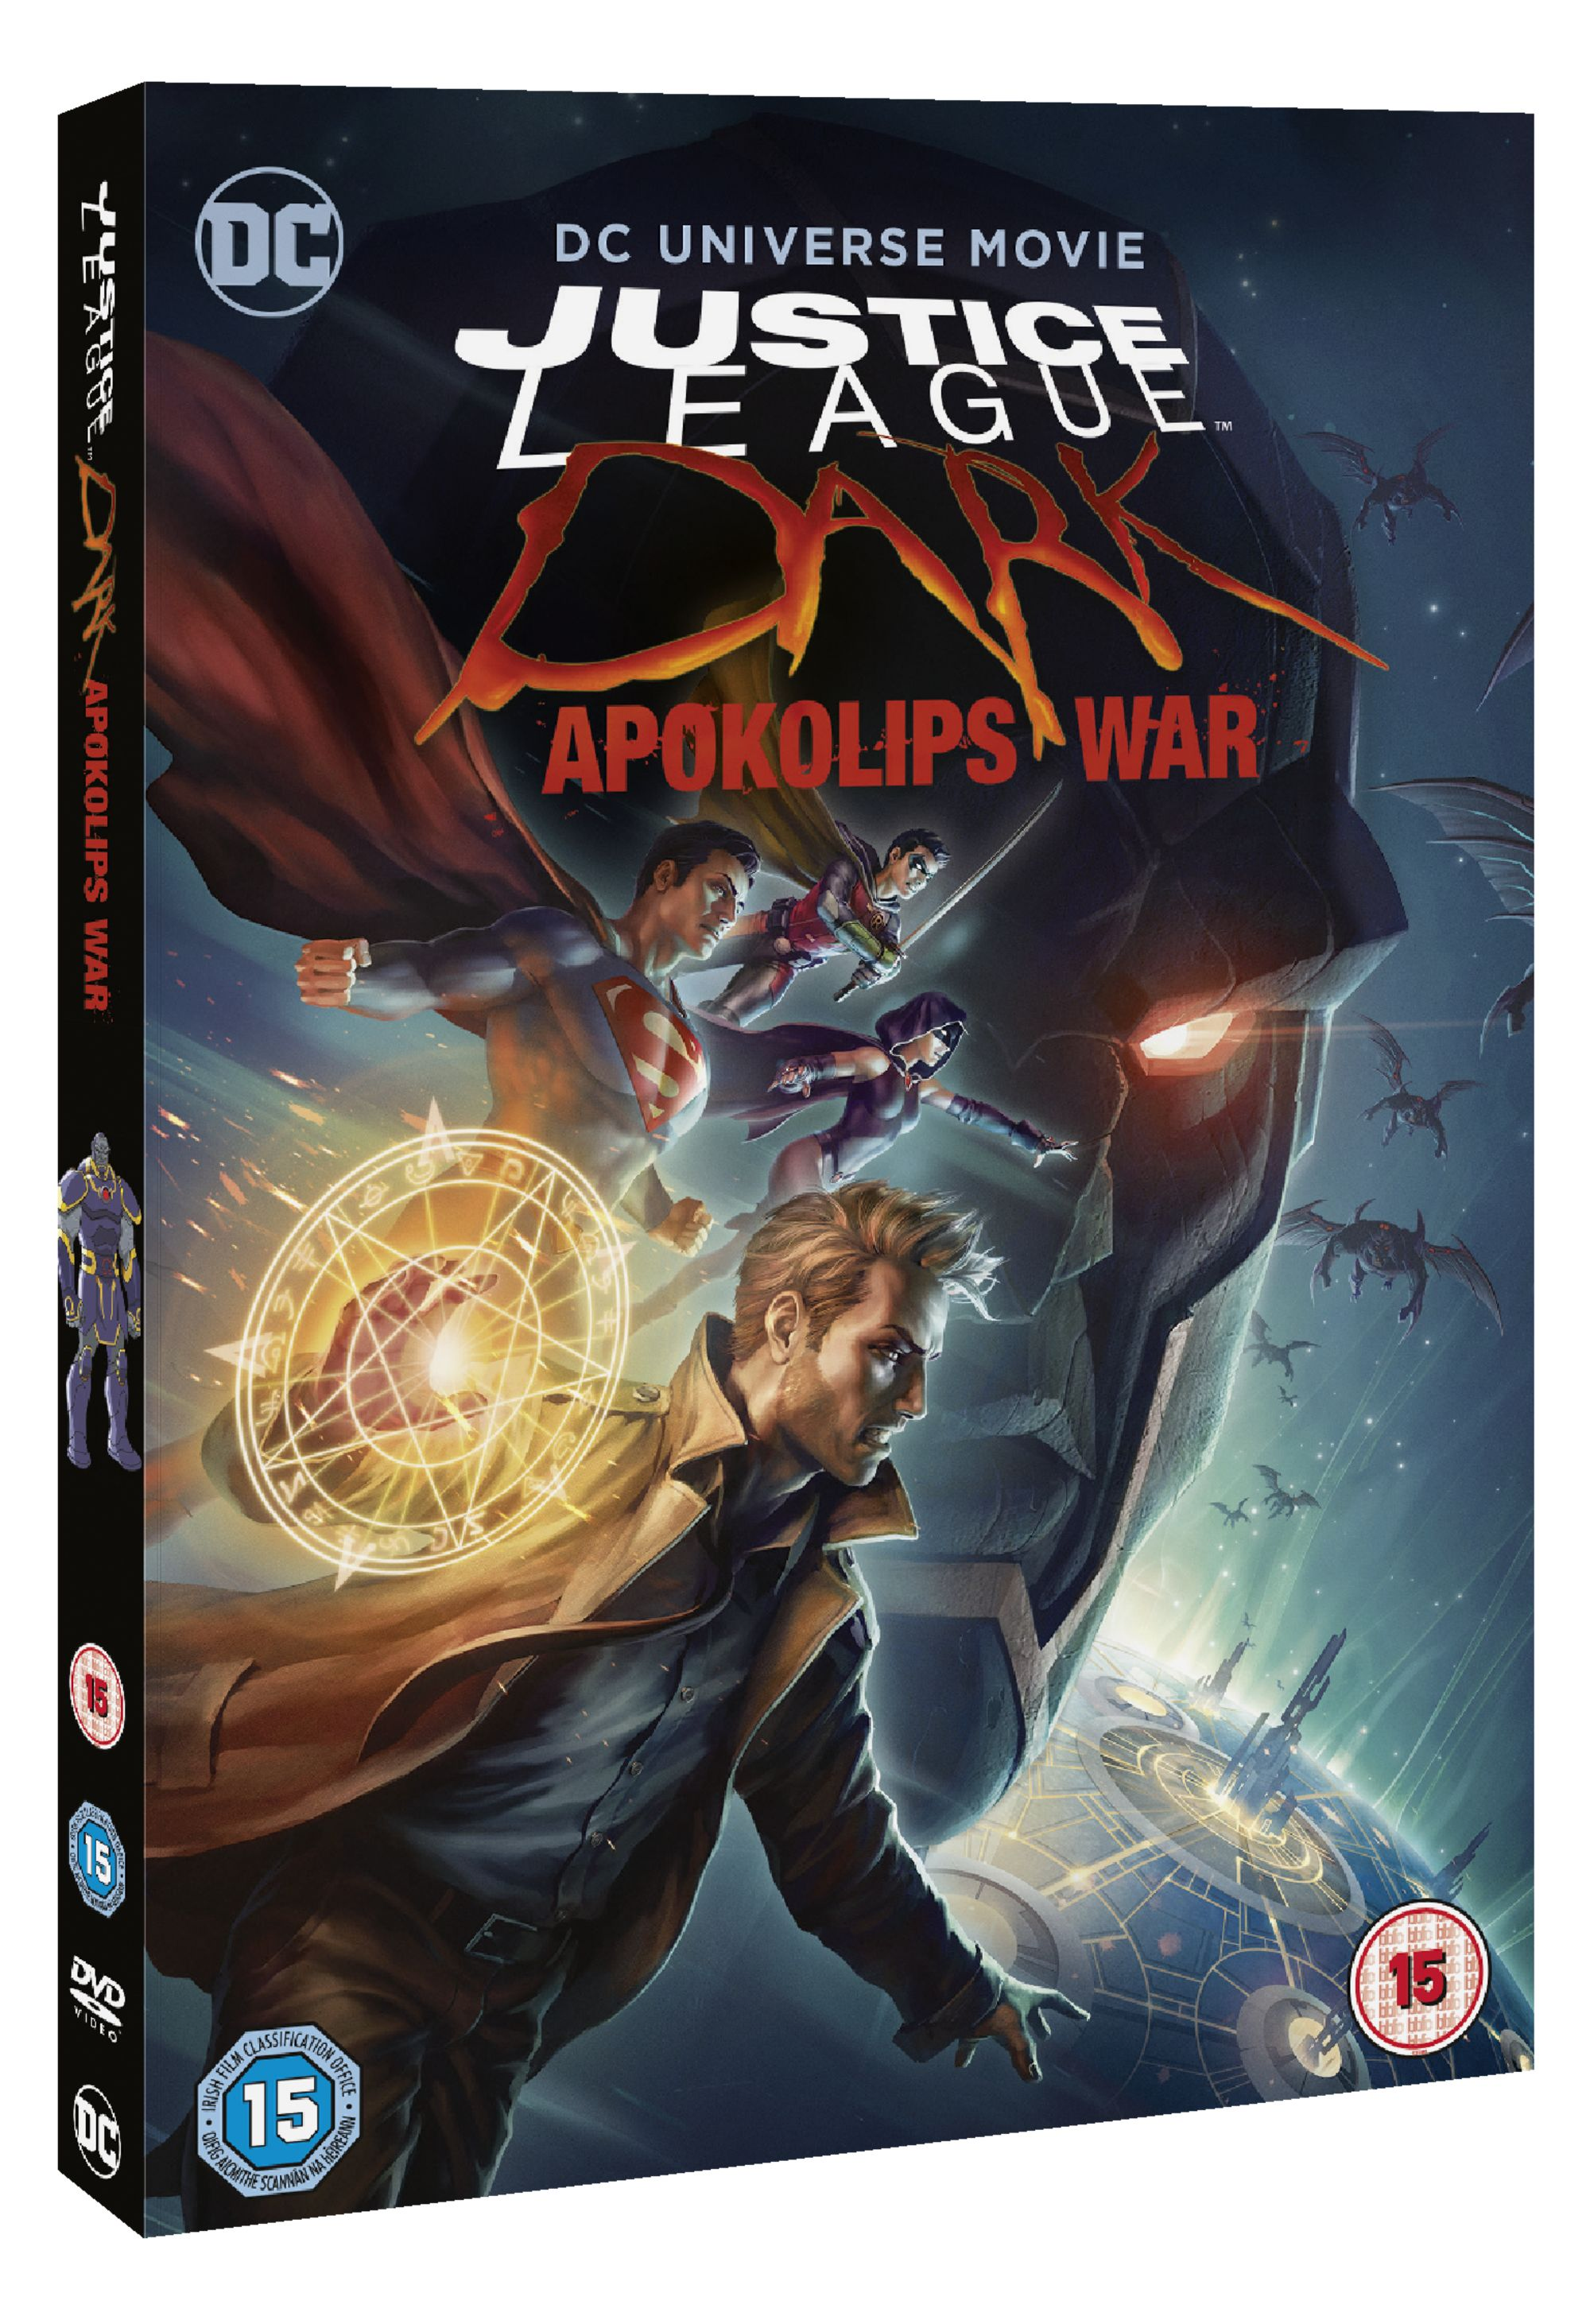 Justice-League-Dark-Apokolips-War-2020-DVD-Roger-R-Cross-Rosario-Dawson miniatuur 3